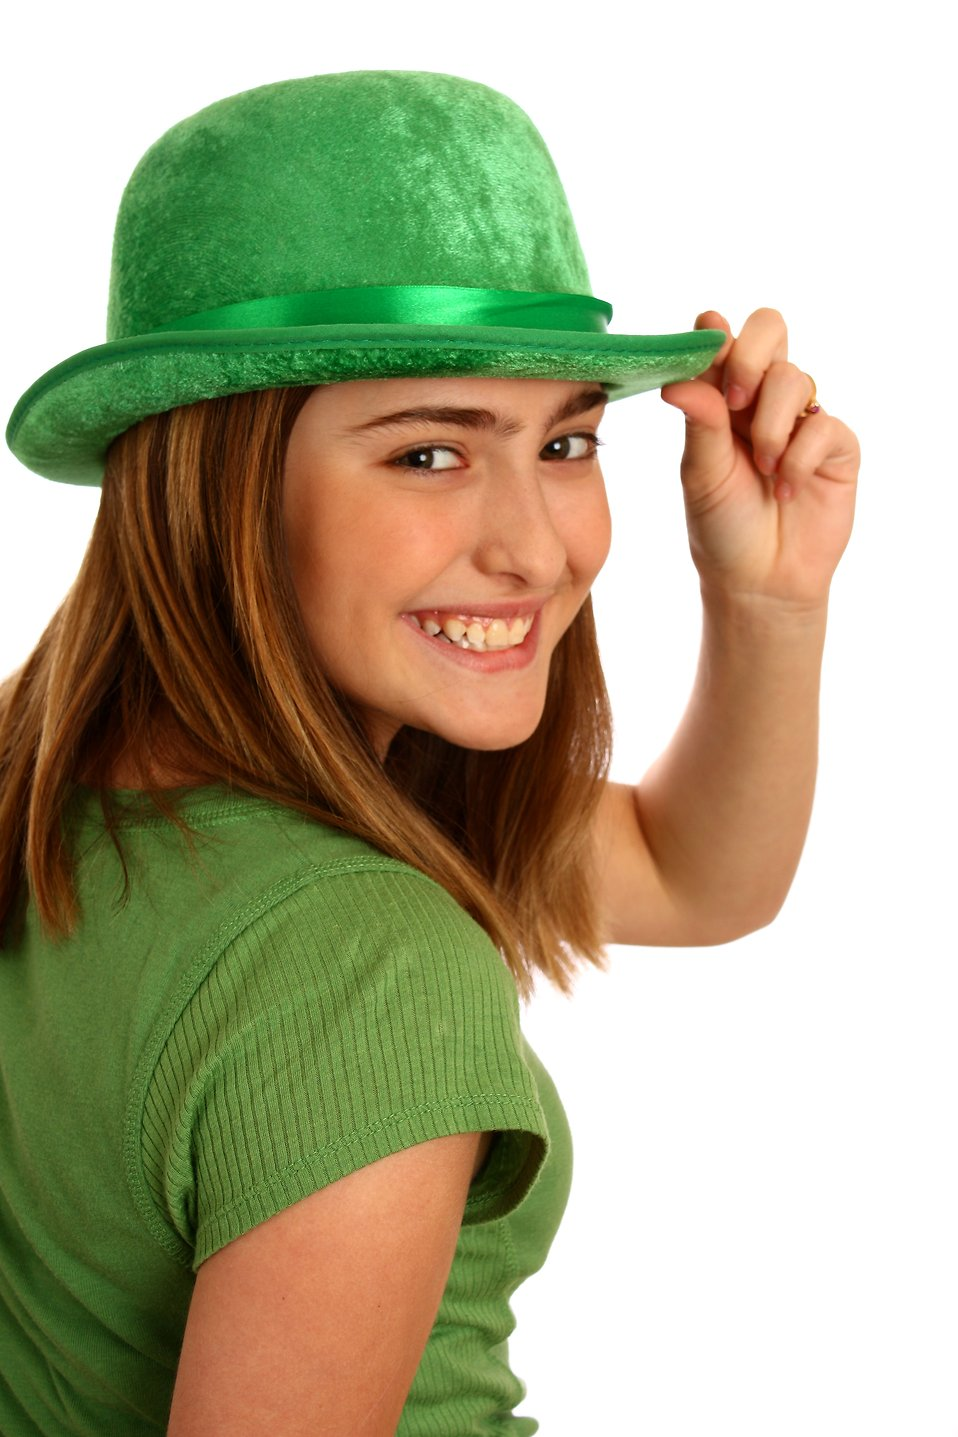 A cute young girl dressed up for Saint Patrick's Day with a green hat : Free Stock Photo